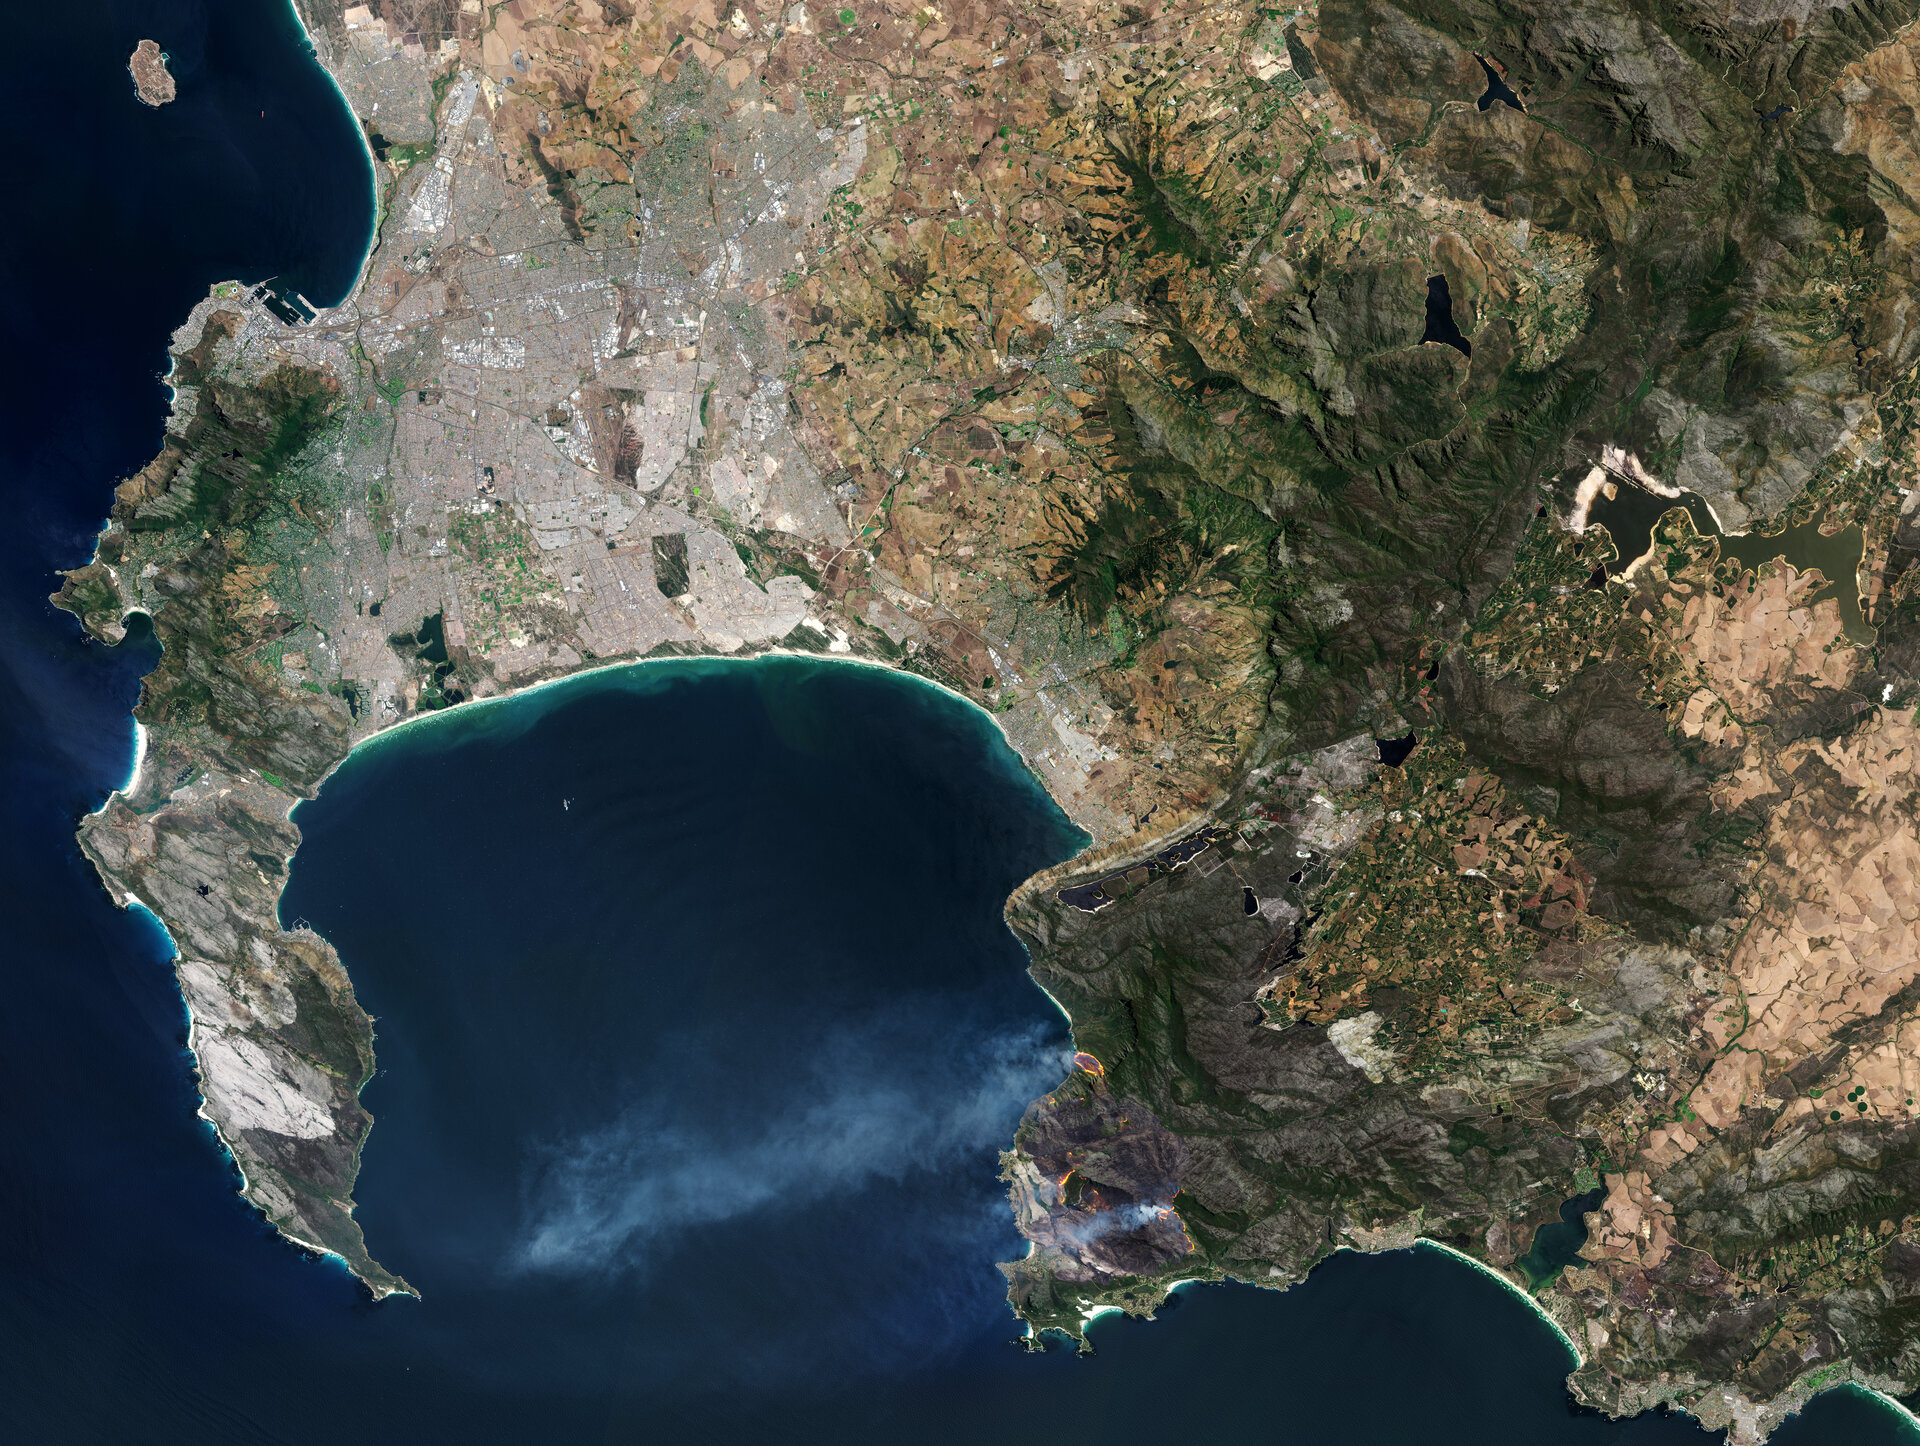 Fires in South Africa's Western Cape, which often occur during the dry summer months and are exacerbated by drought. Satellites can be used to spot vulnerable areas.